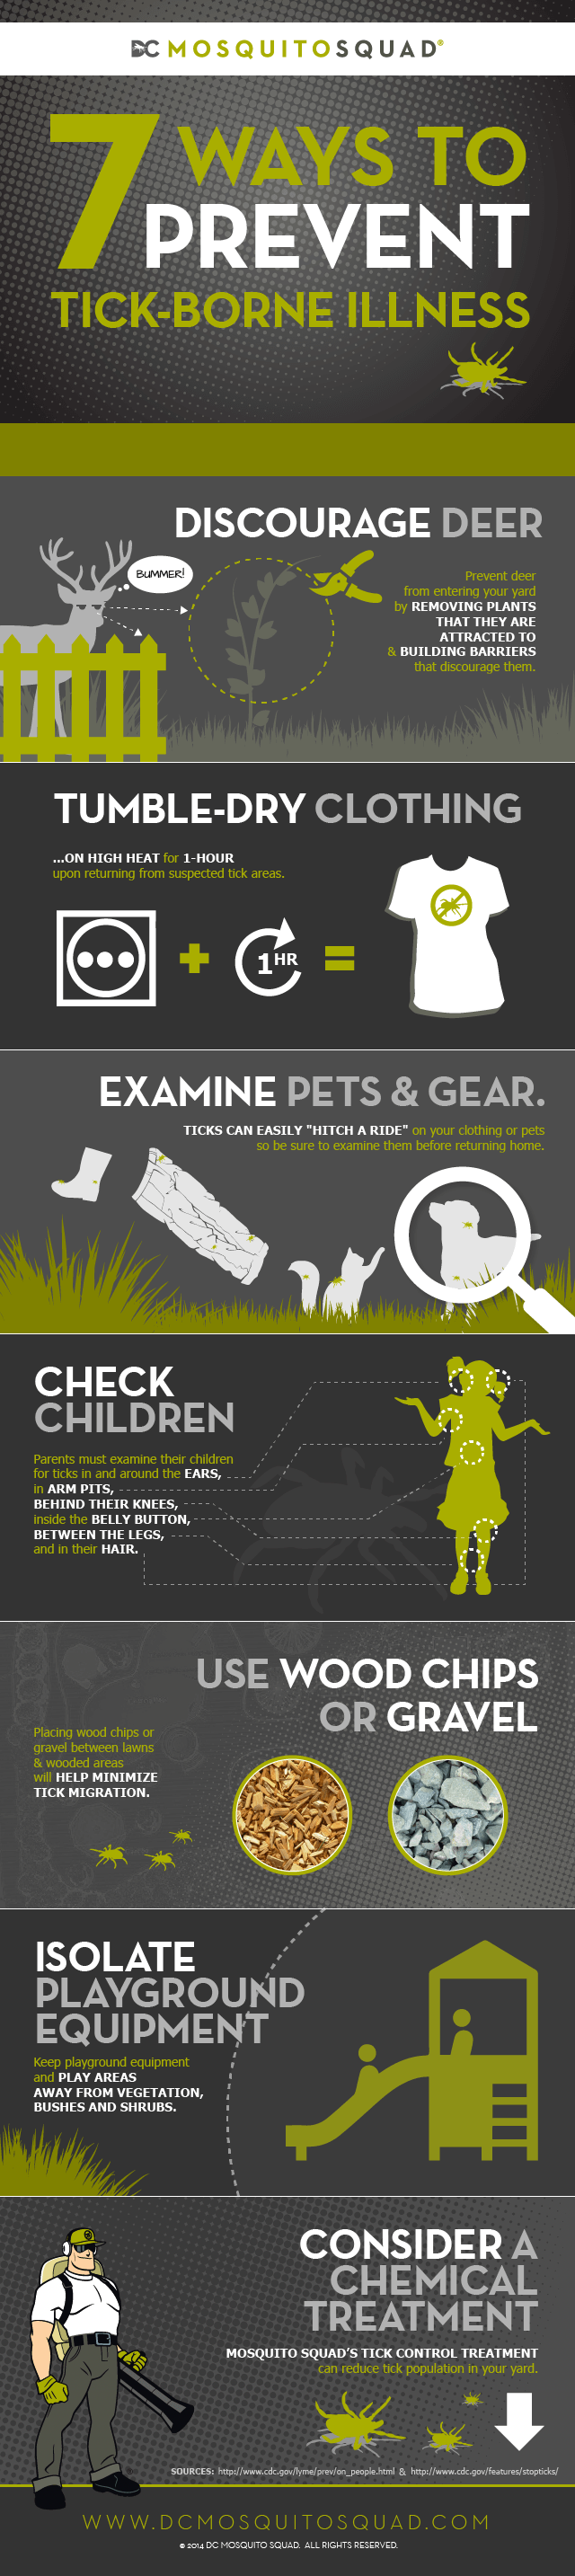 Infographic showing 7 Ways to Prevent Tick-Borne Illness